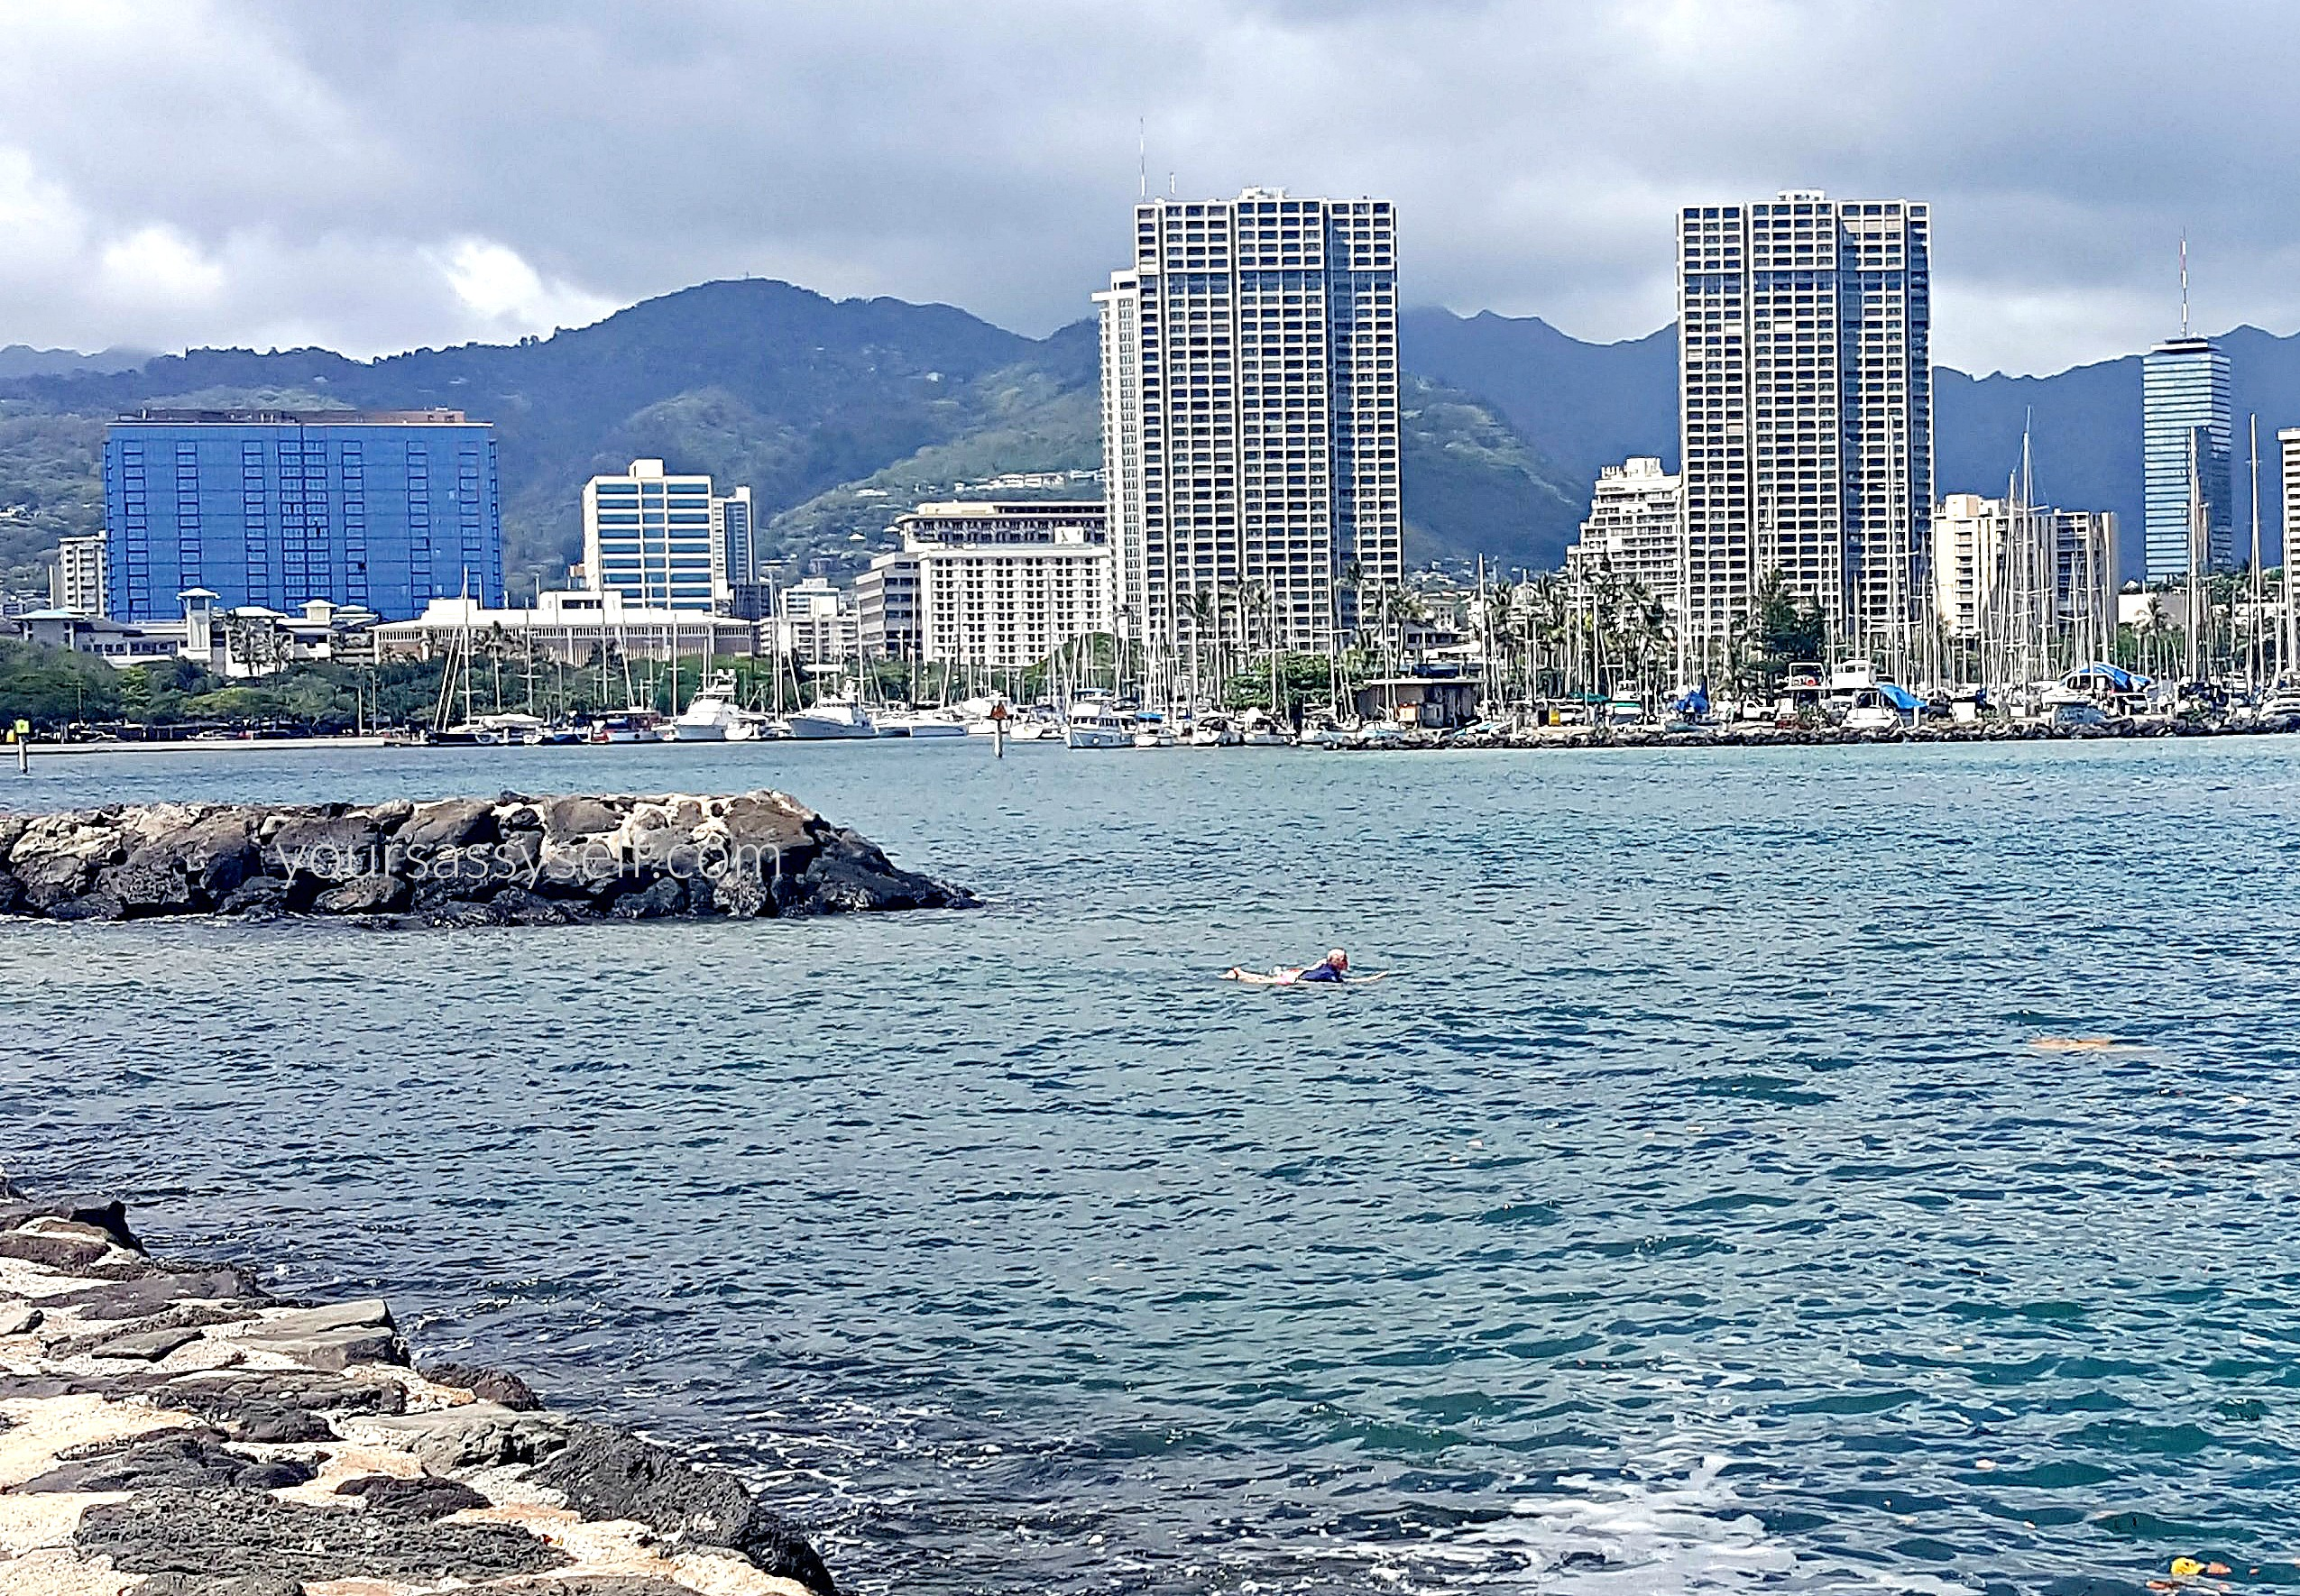 Surfer paddling in Waikiki waters - yoursassyself.com